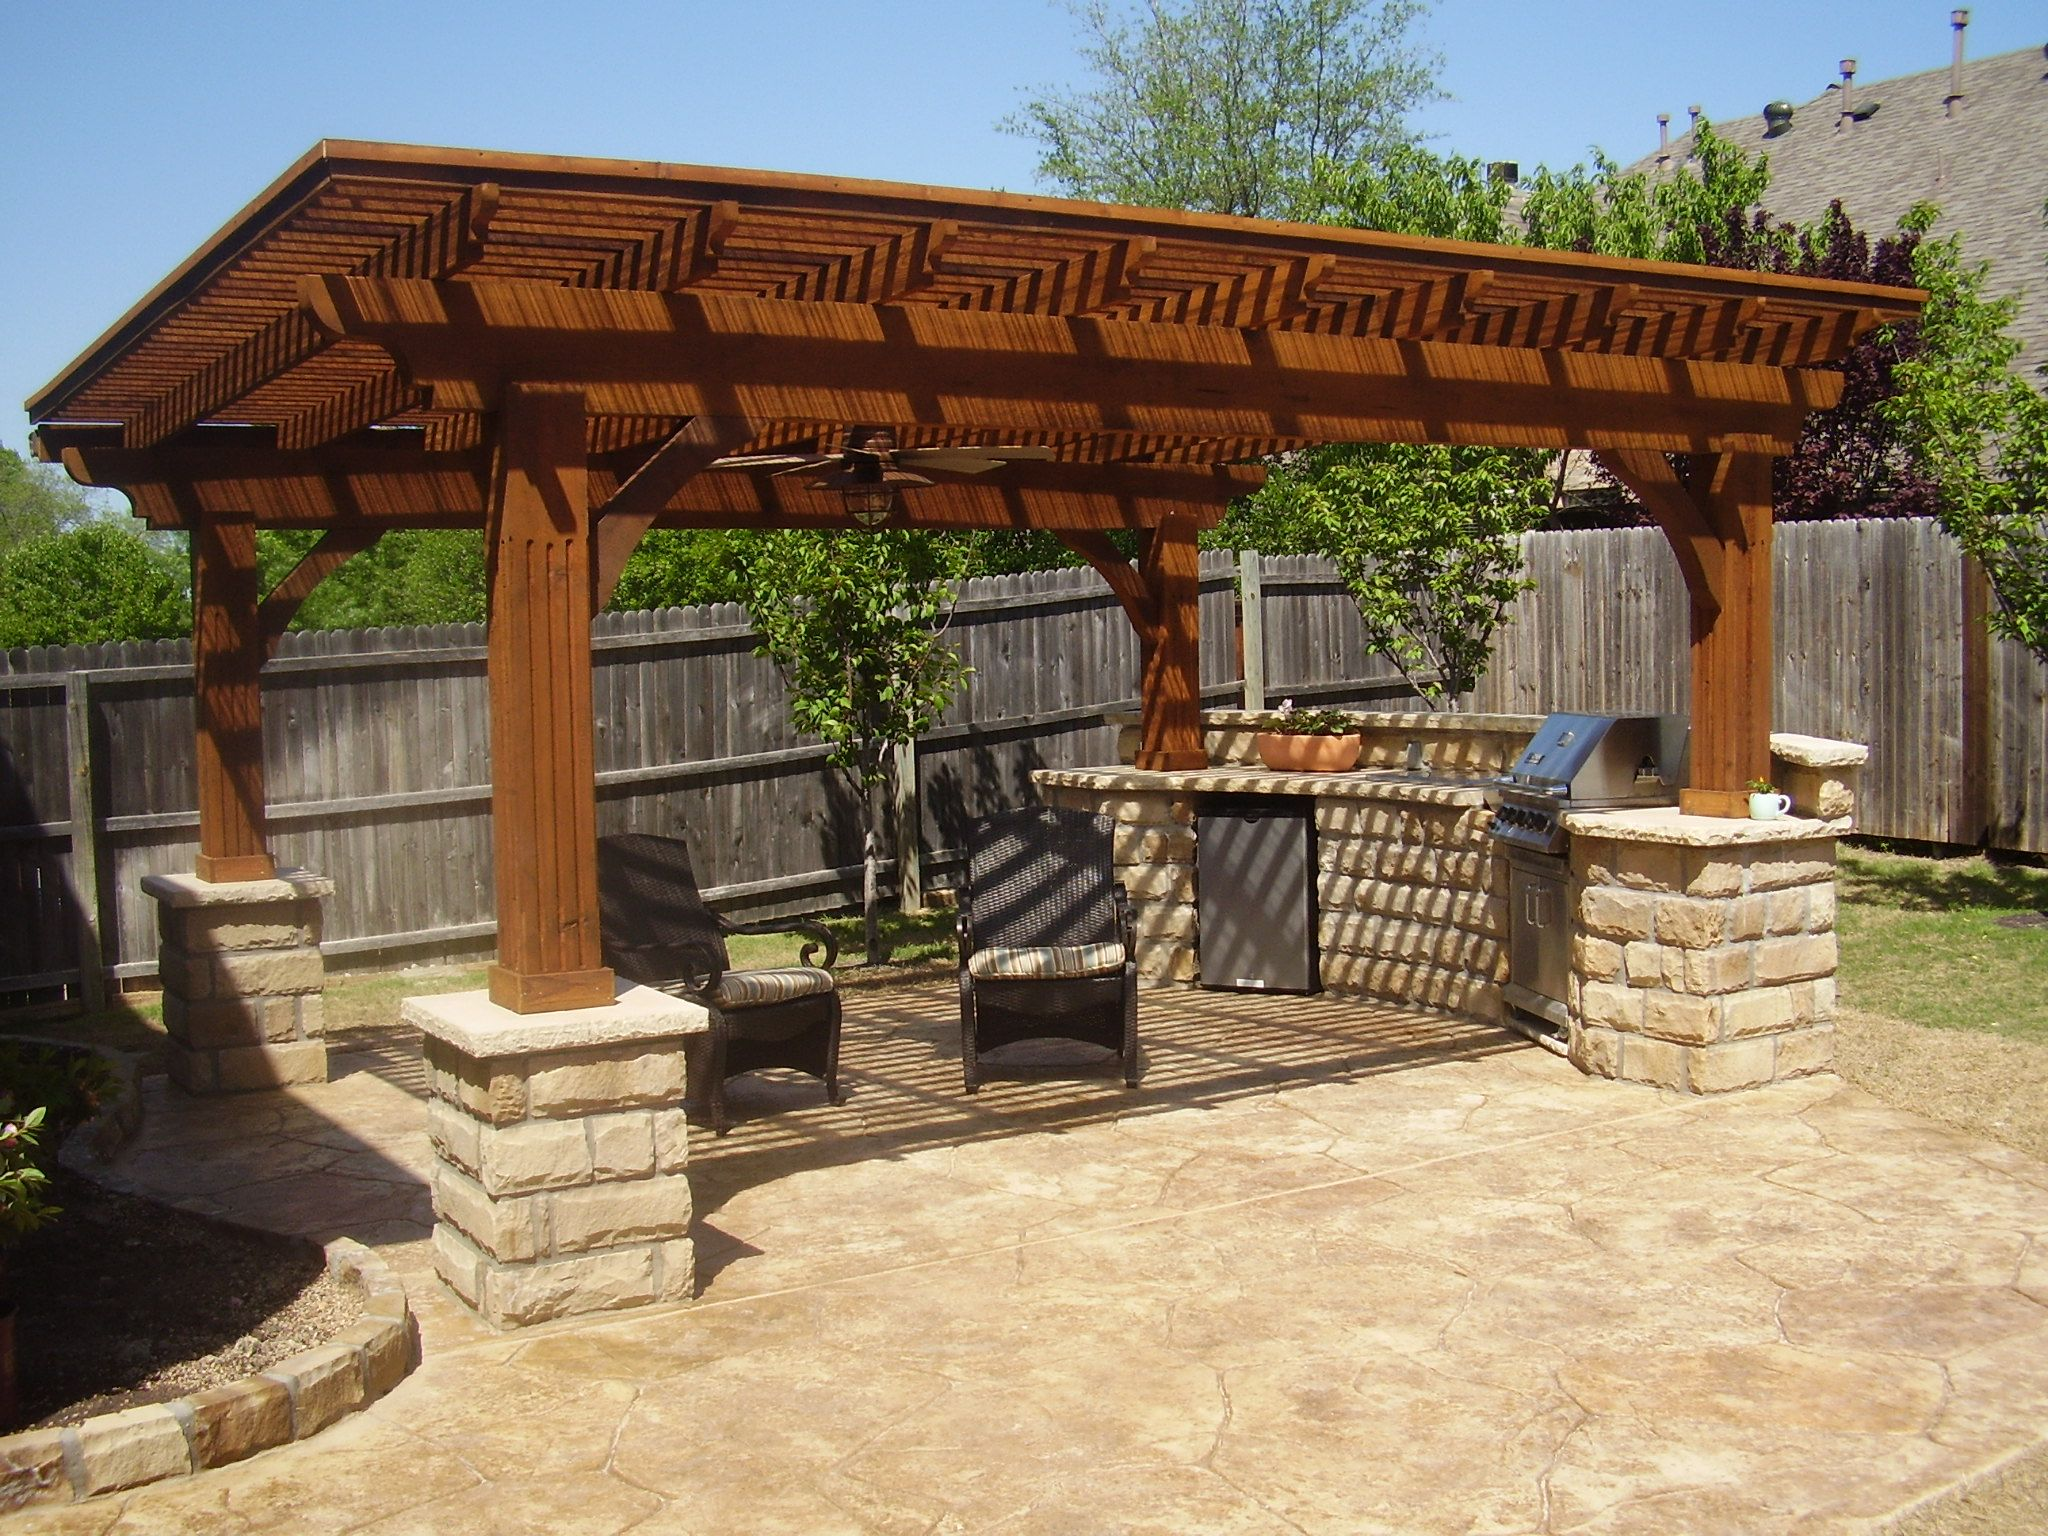 Patio fun with slanted roof | The Great Outdoors of Decor ...